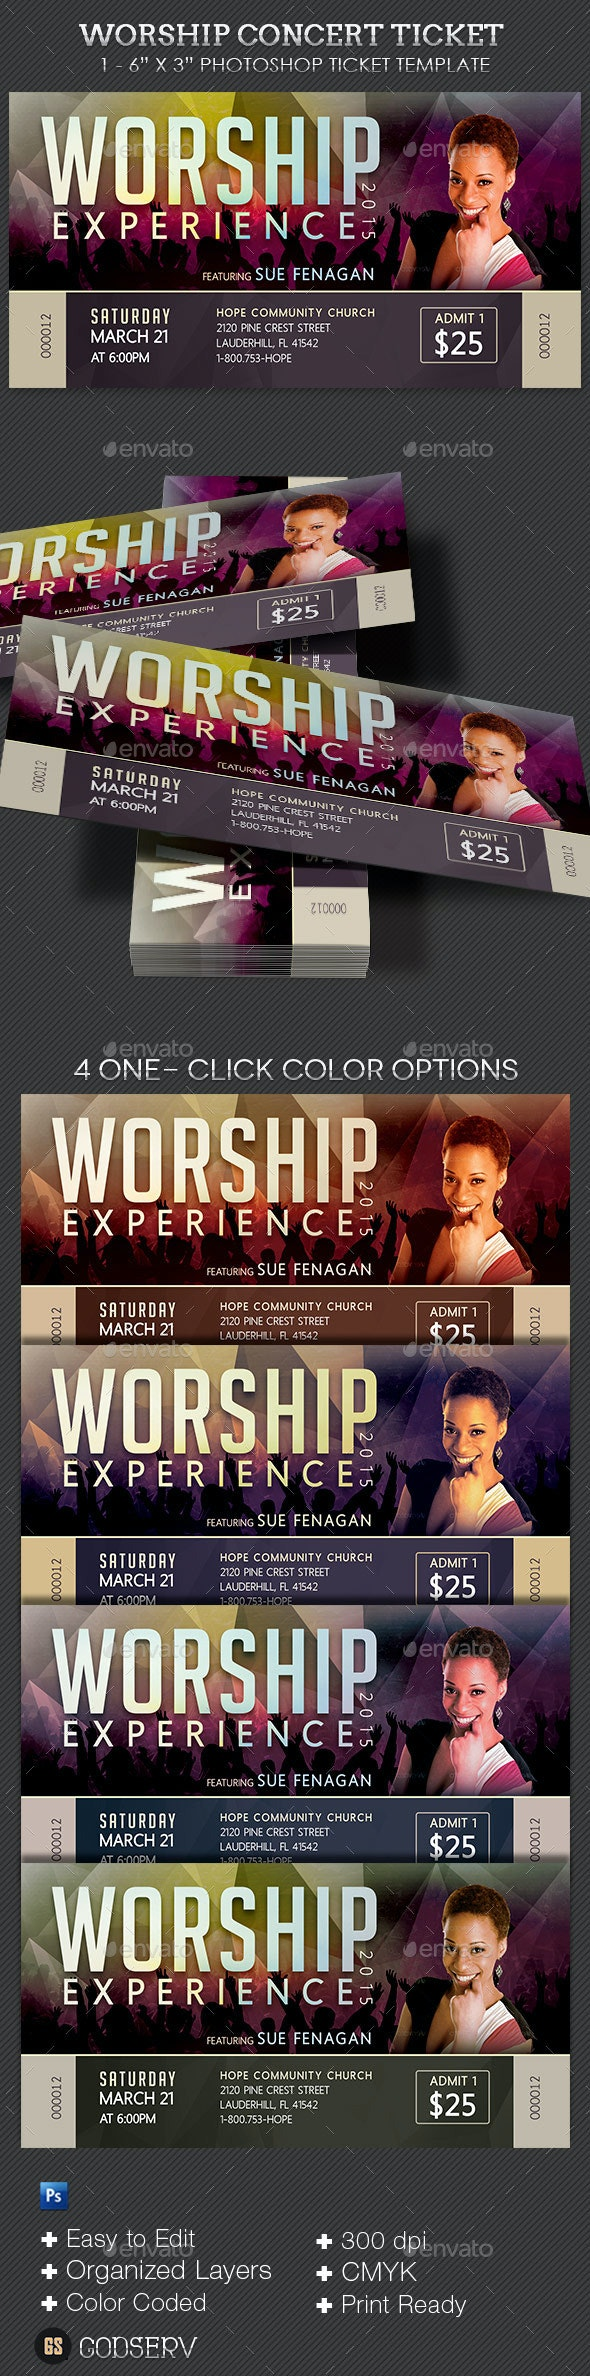 Worship Concert Ticket Template - Miscellaneous Print Templates